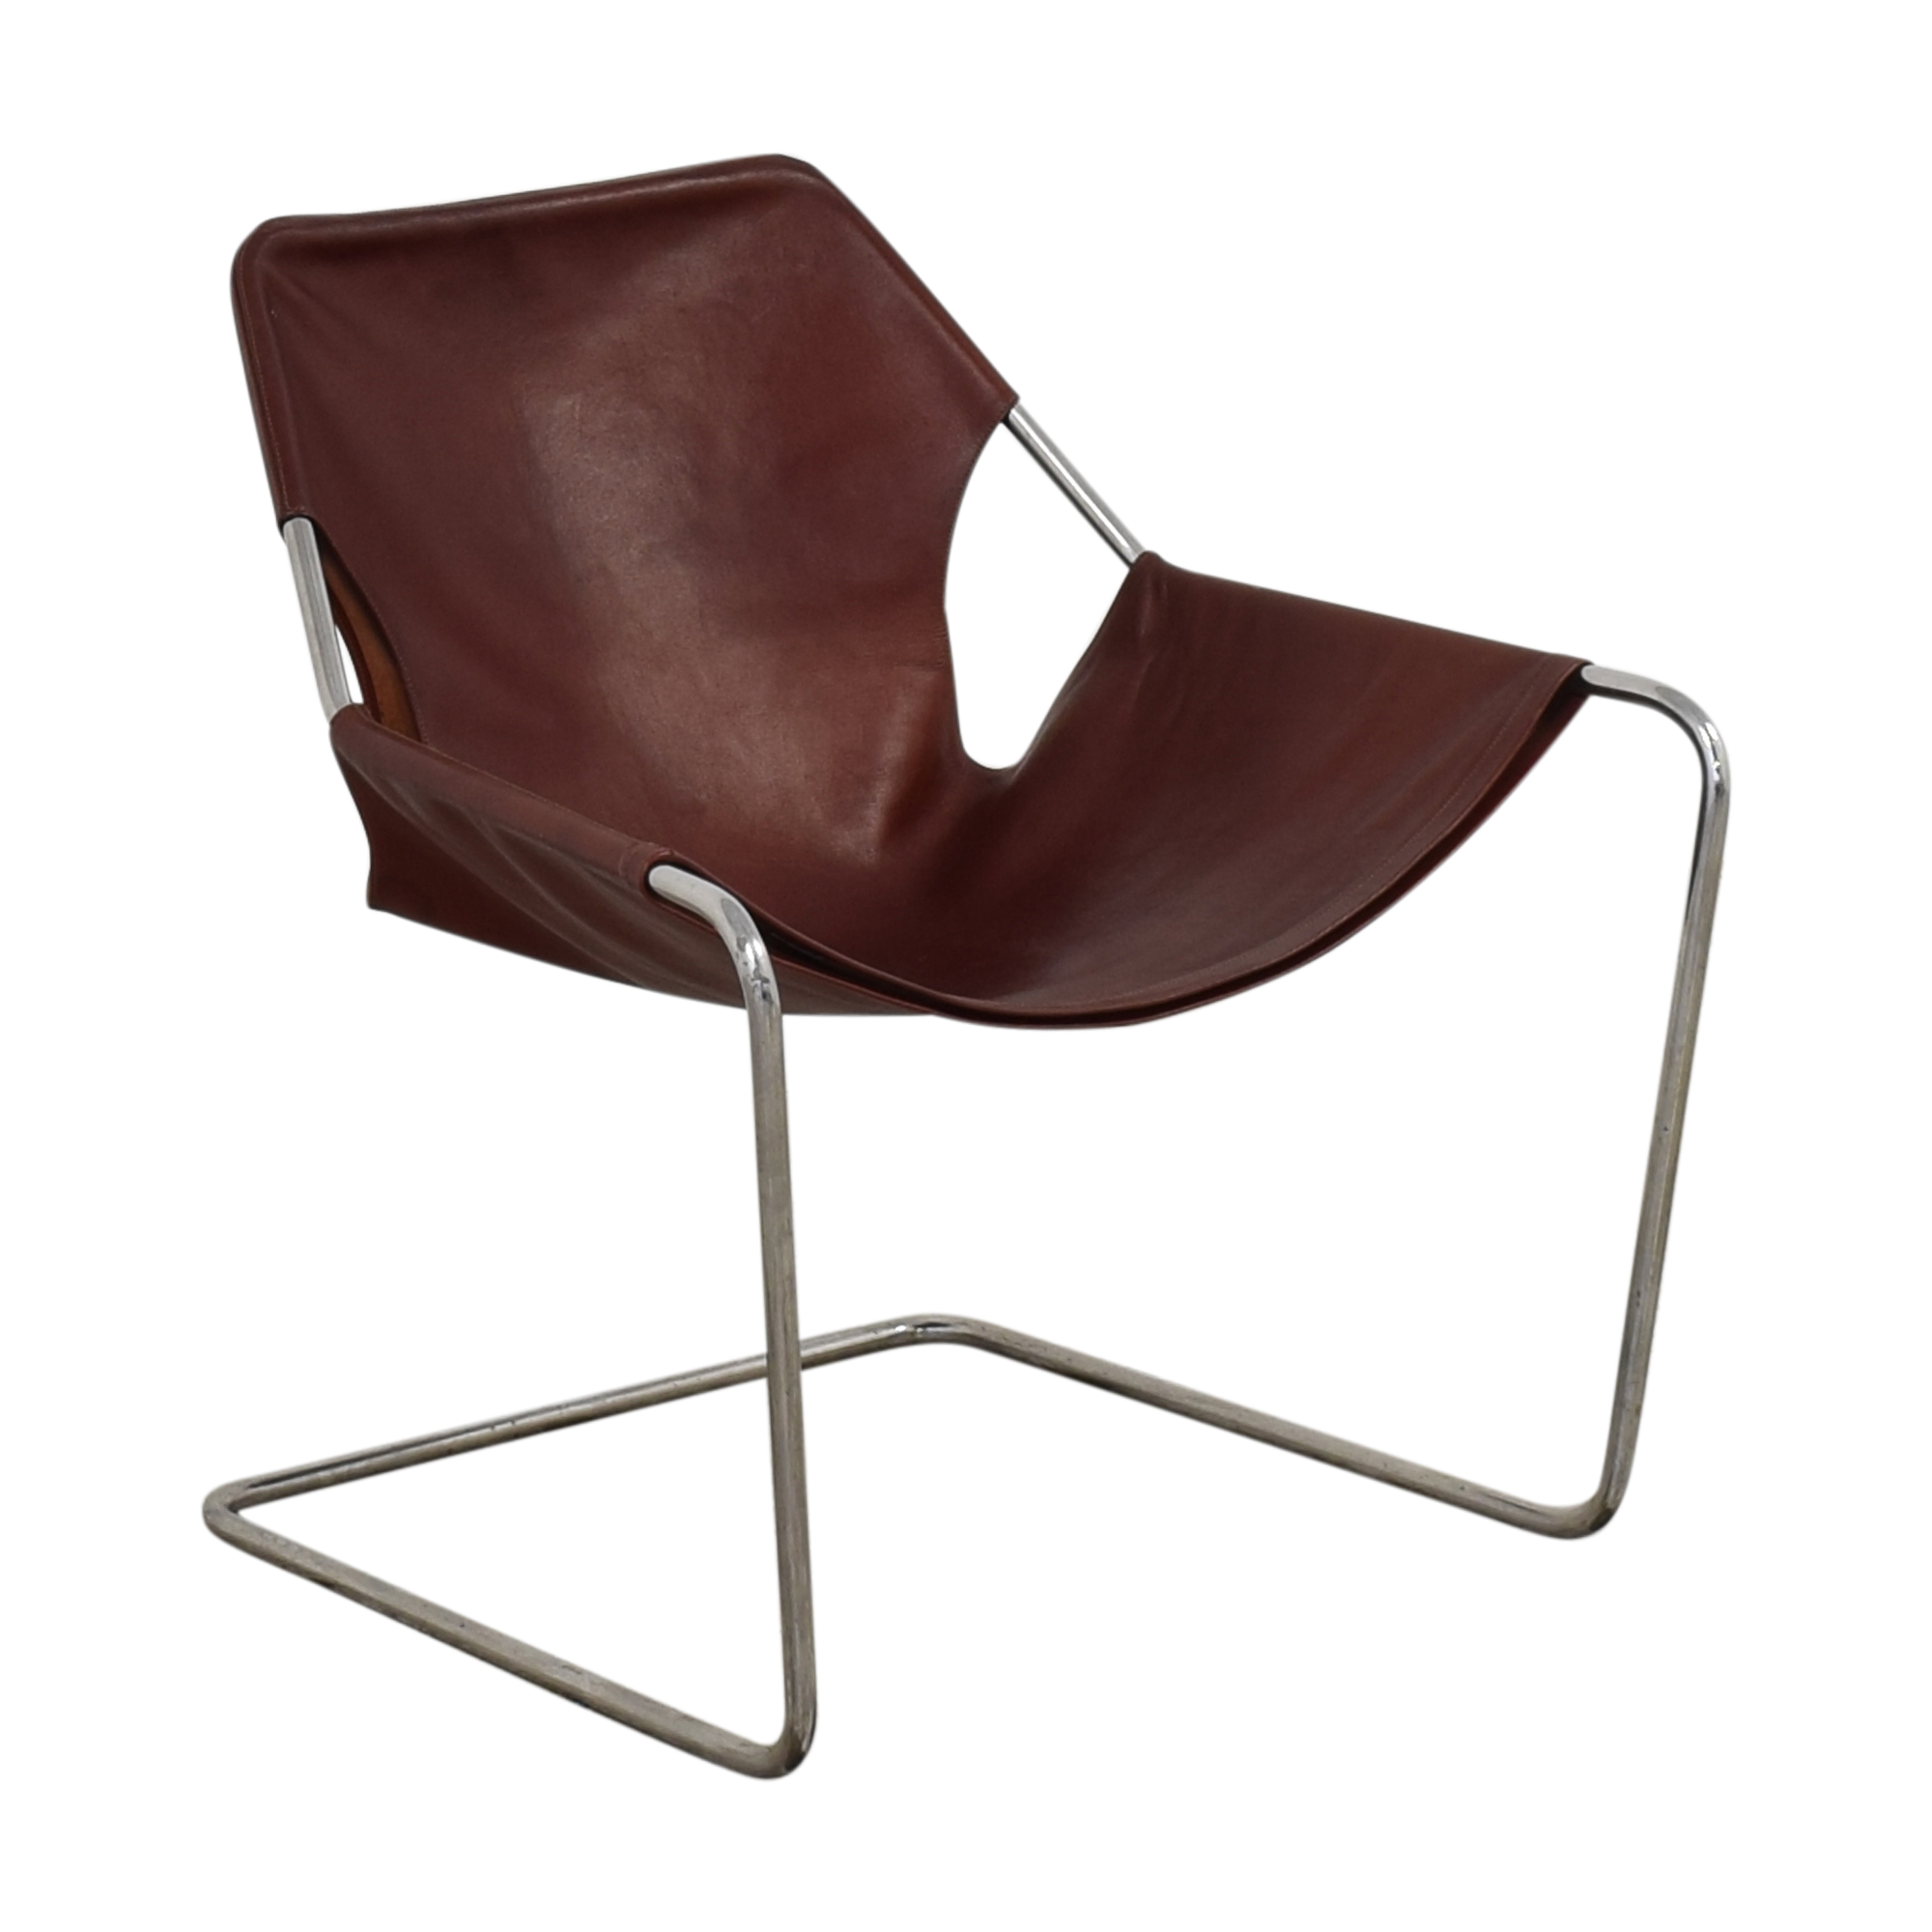 Design Within Reach Design Within Reach Paulistano Armchair Chairs